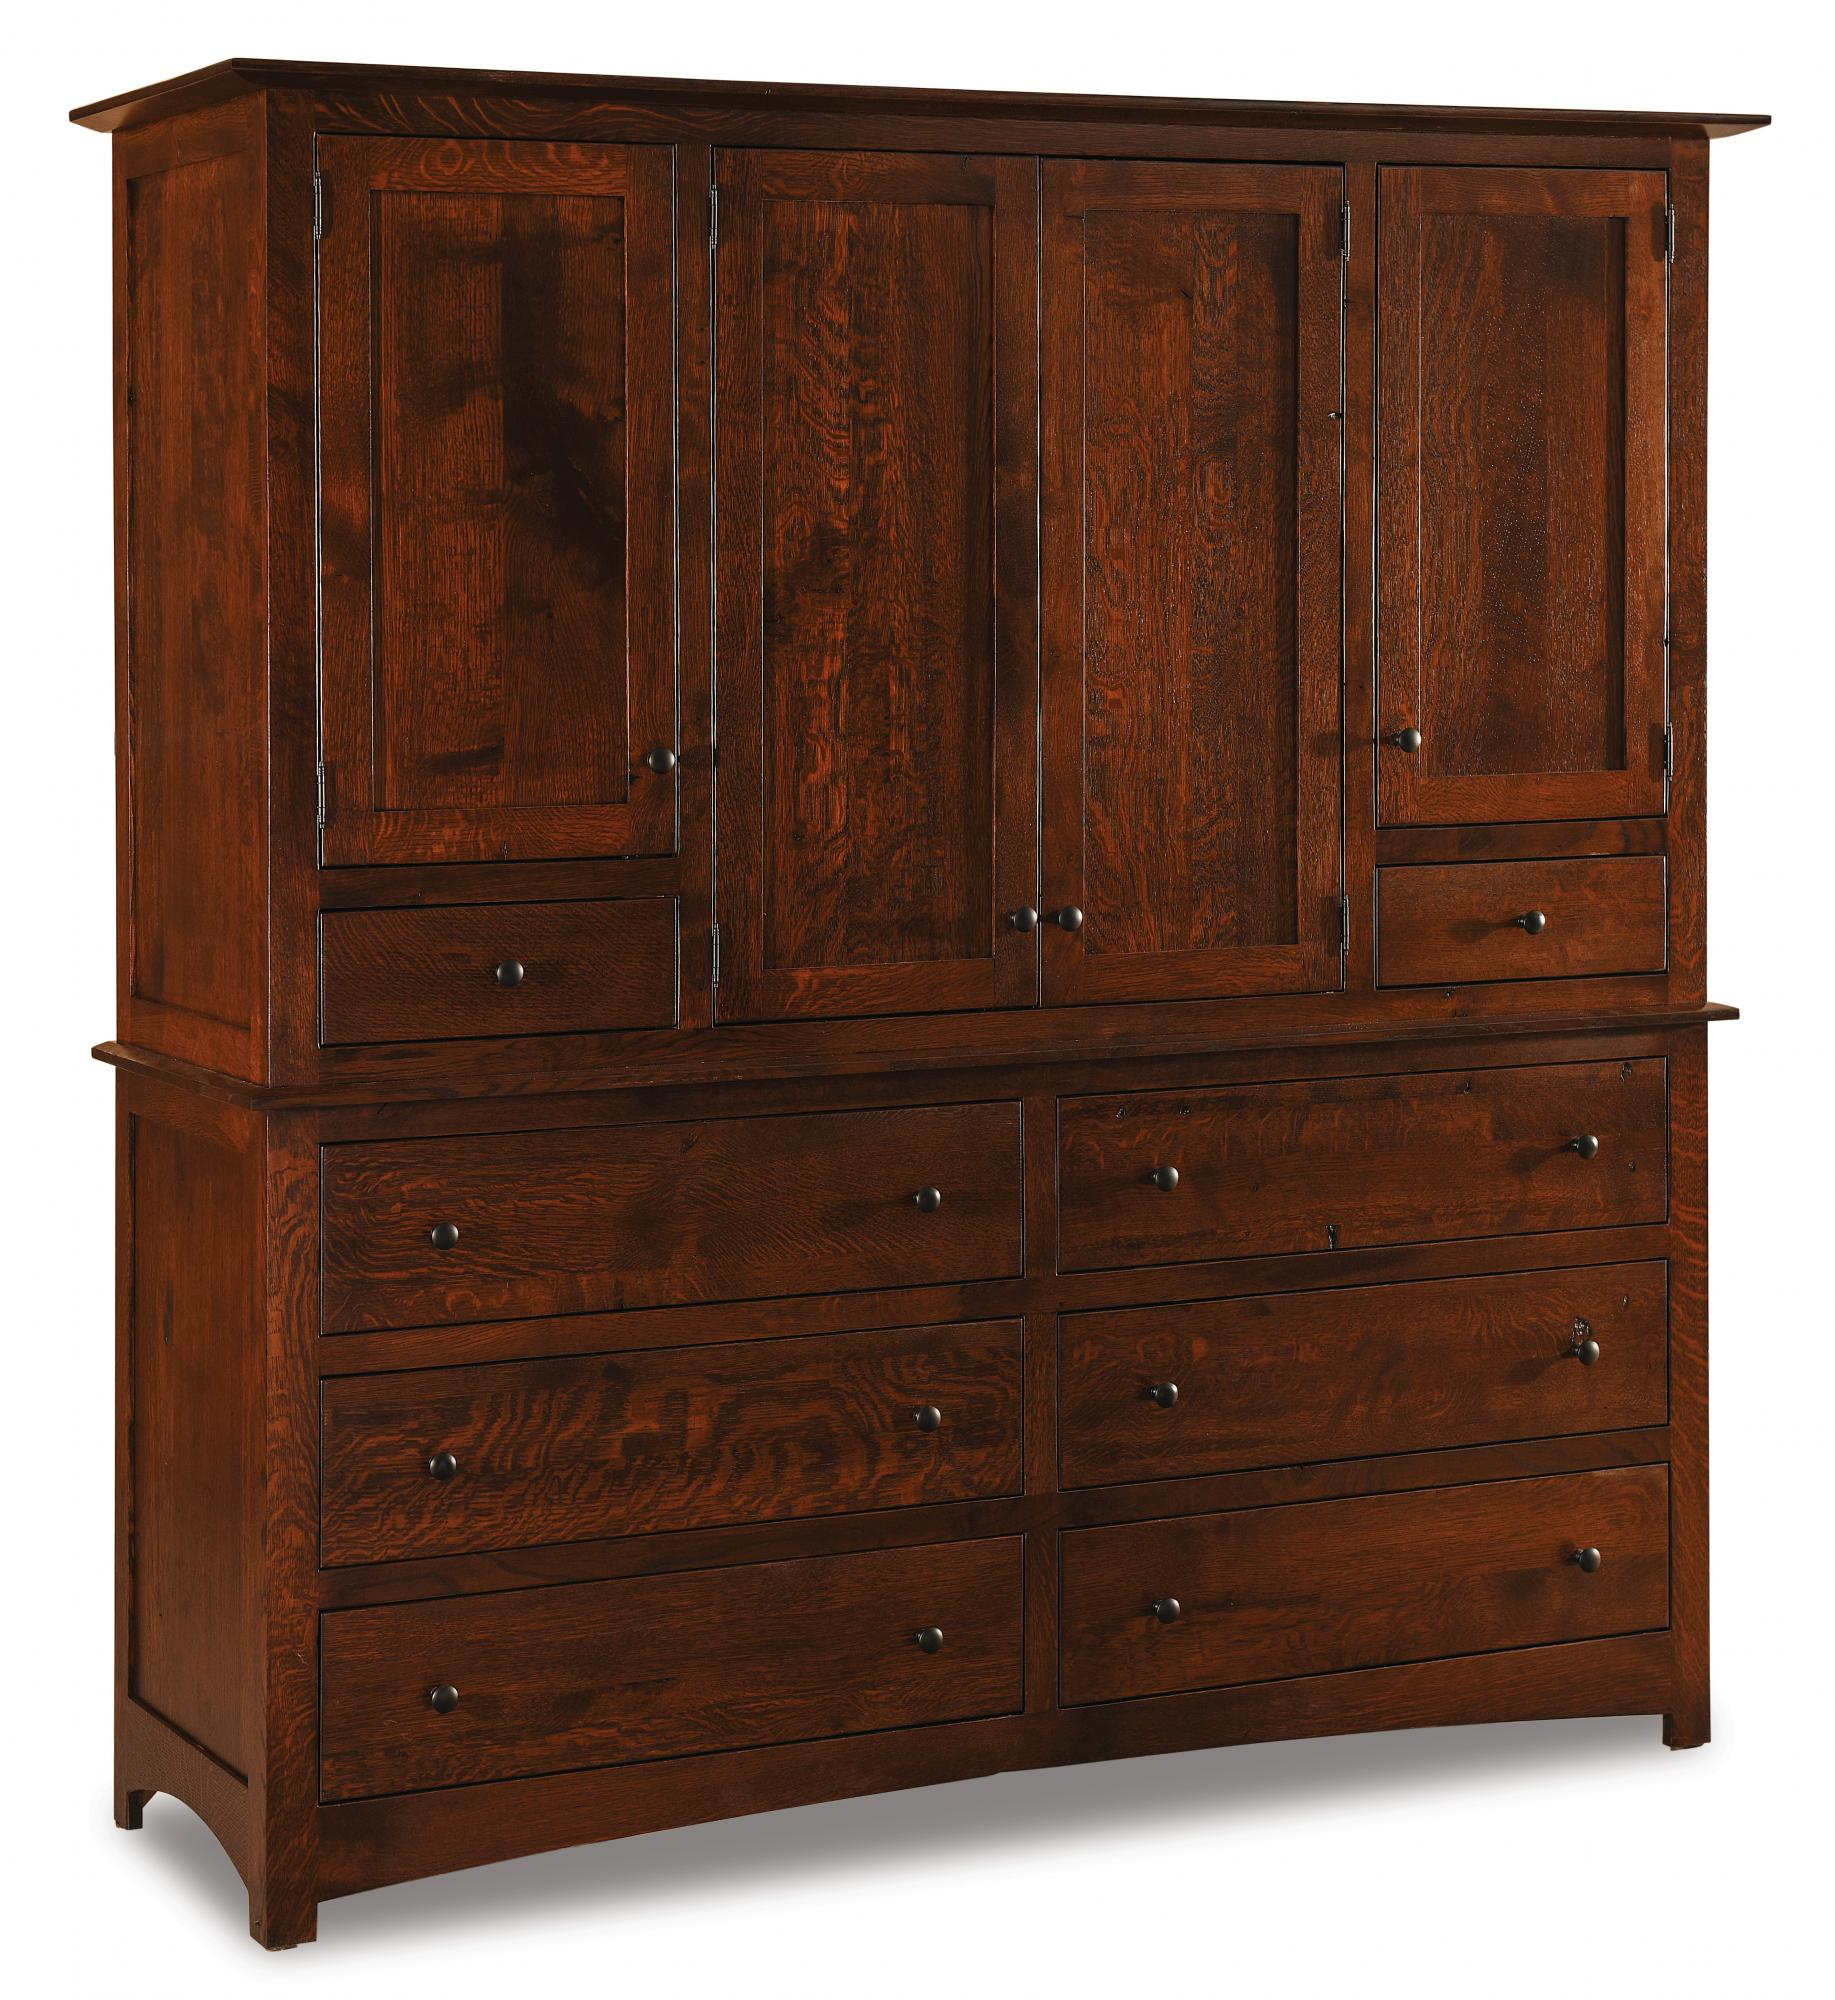 Deluxe Door Designs By Amersham S Iq Furniture: Amish Furniture Store